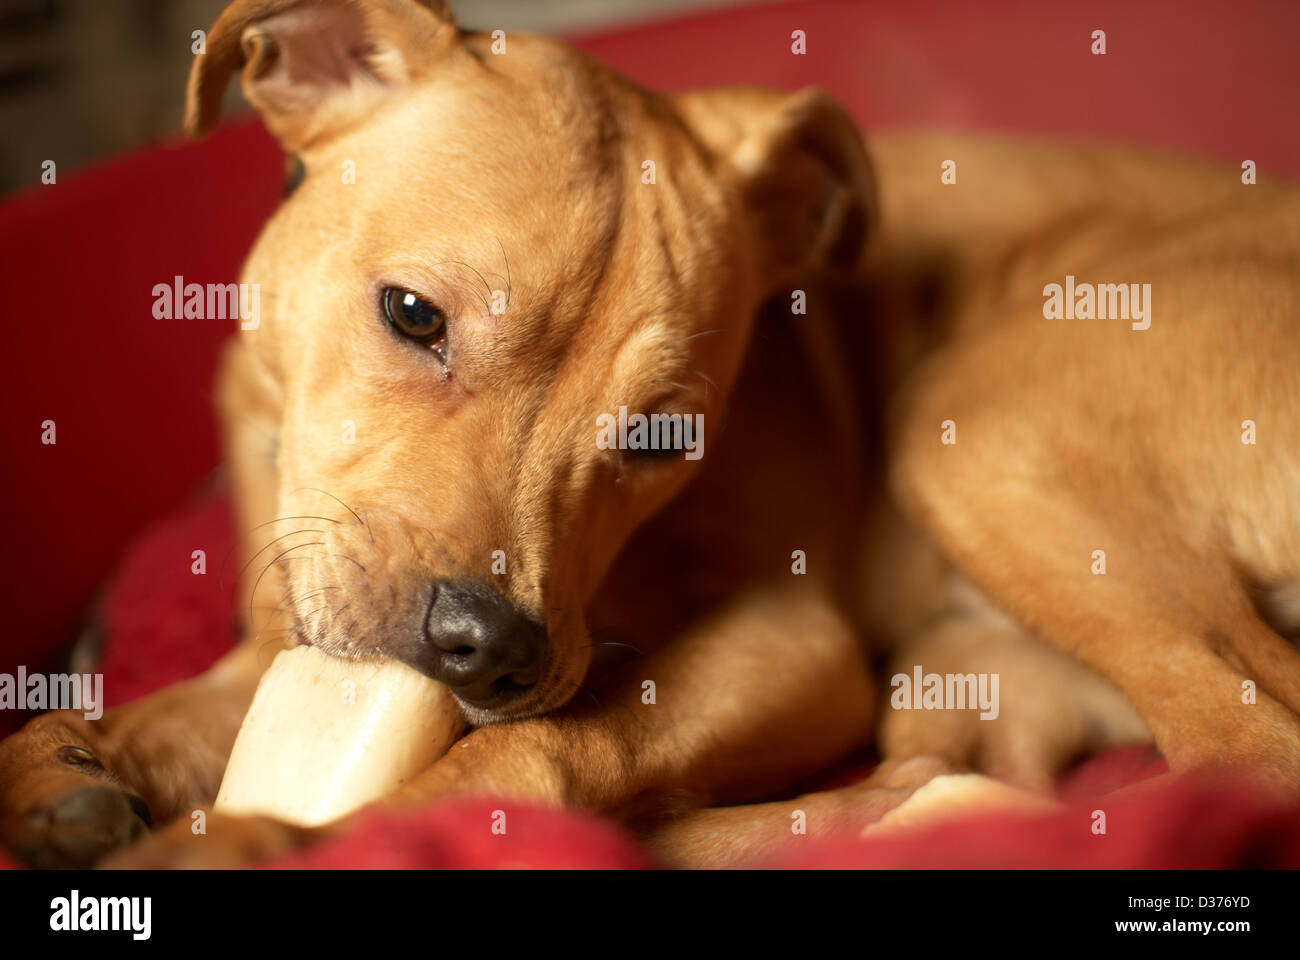 A Staffordshire Bull terrier dog enjoying gnawing on a bone - Stock Image